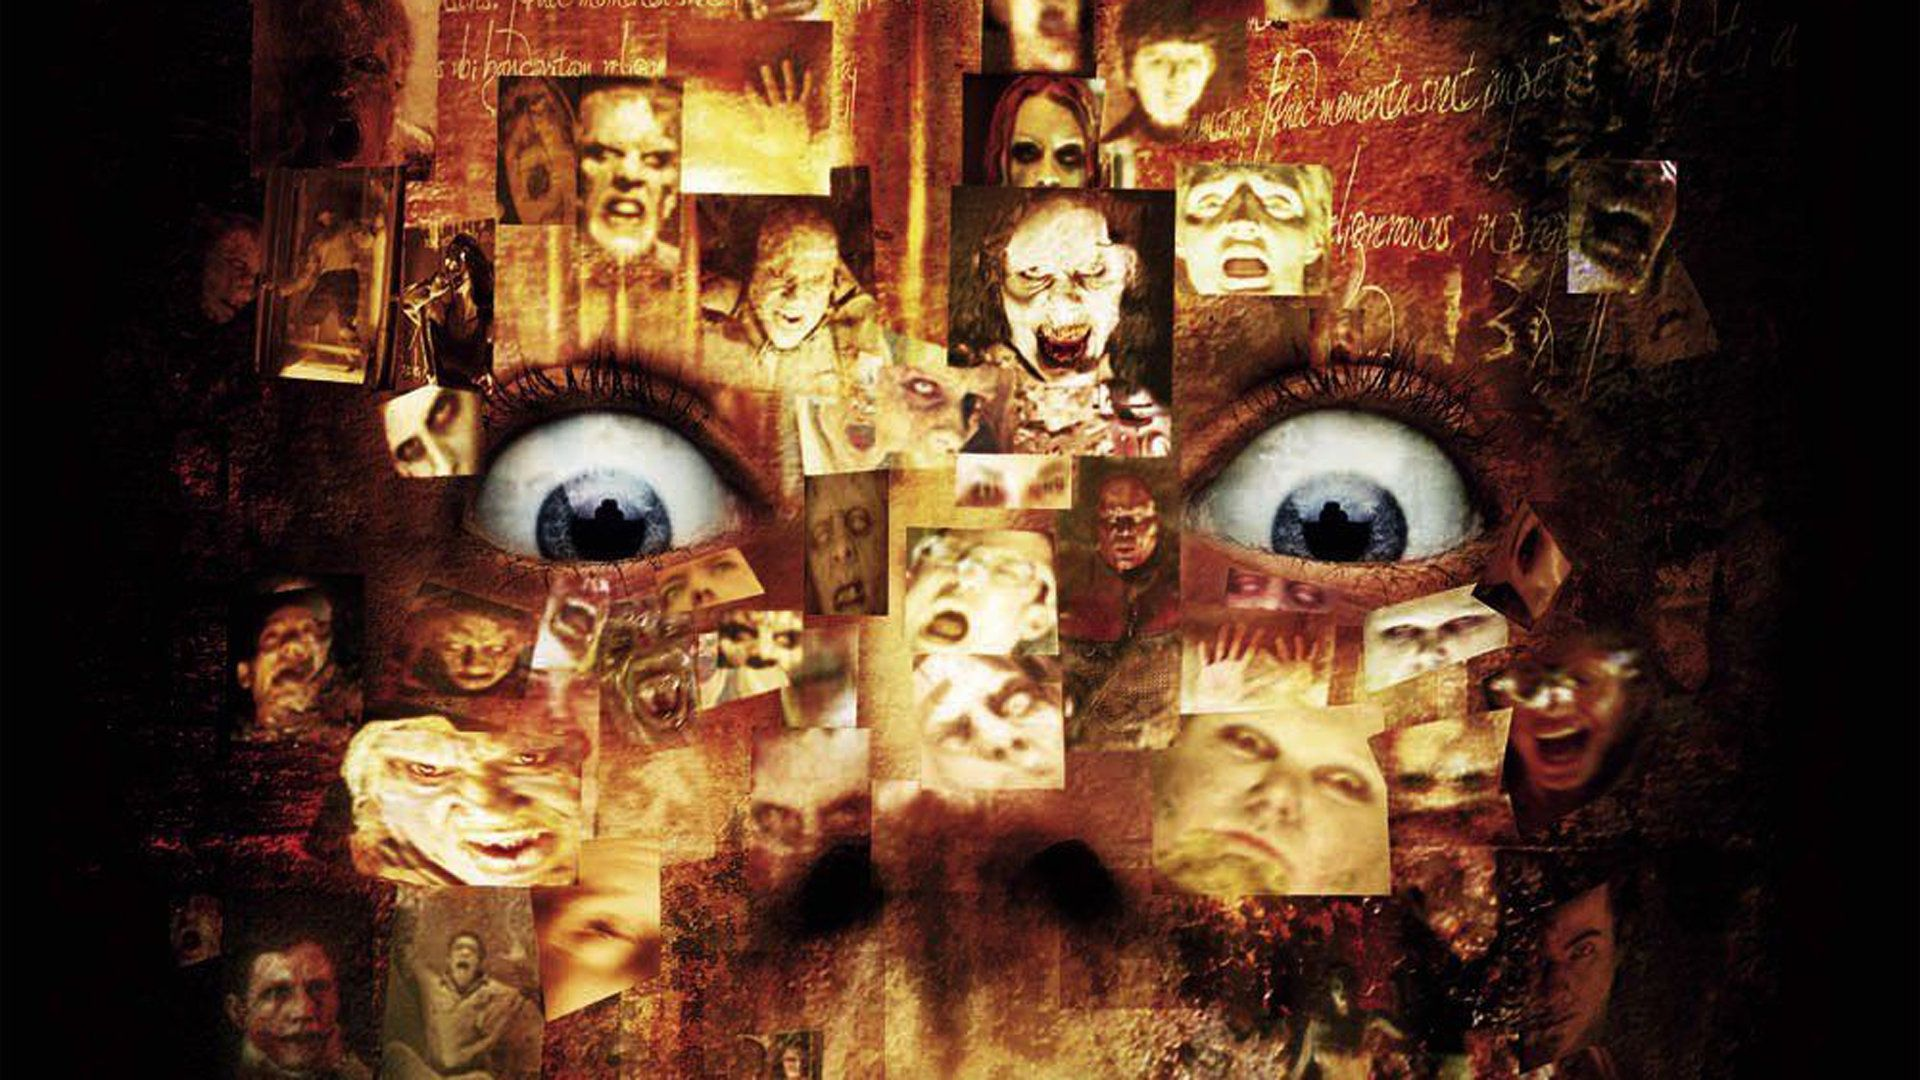 Img chili cherry wallpaper - 13 Ghosts Images 13 Ghosts Hd Wallpaper And Background Photos